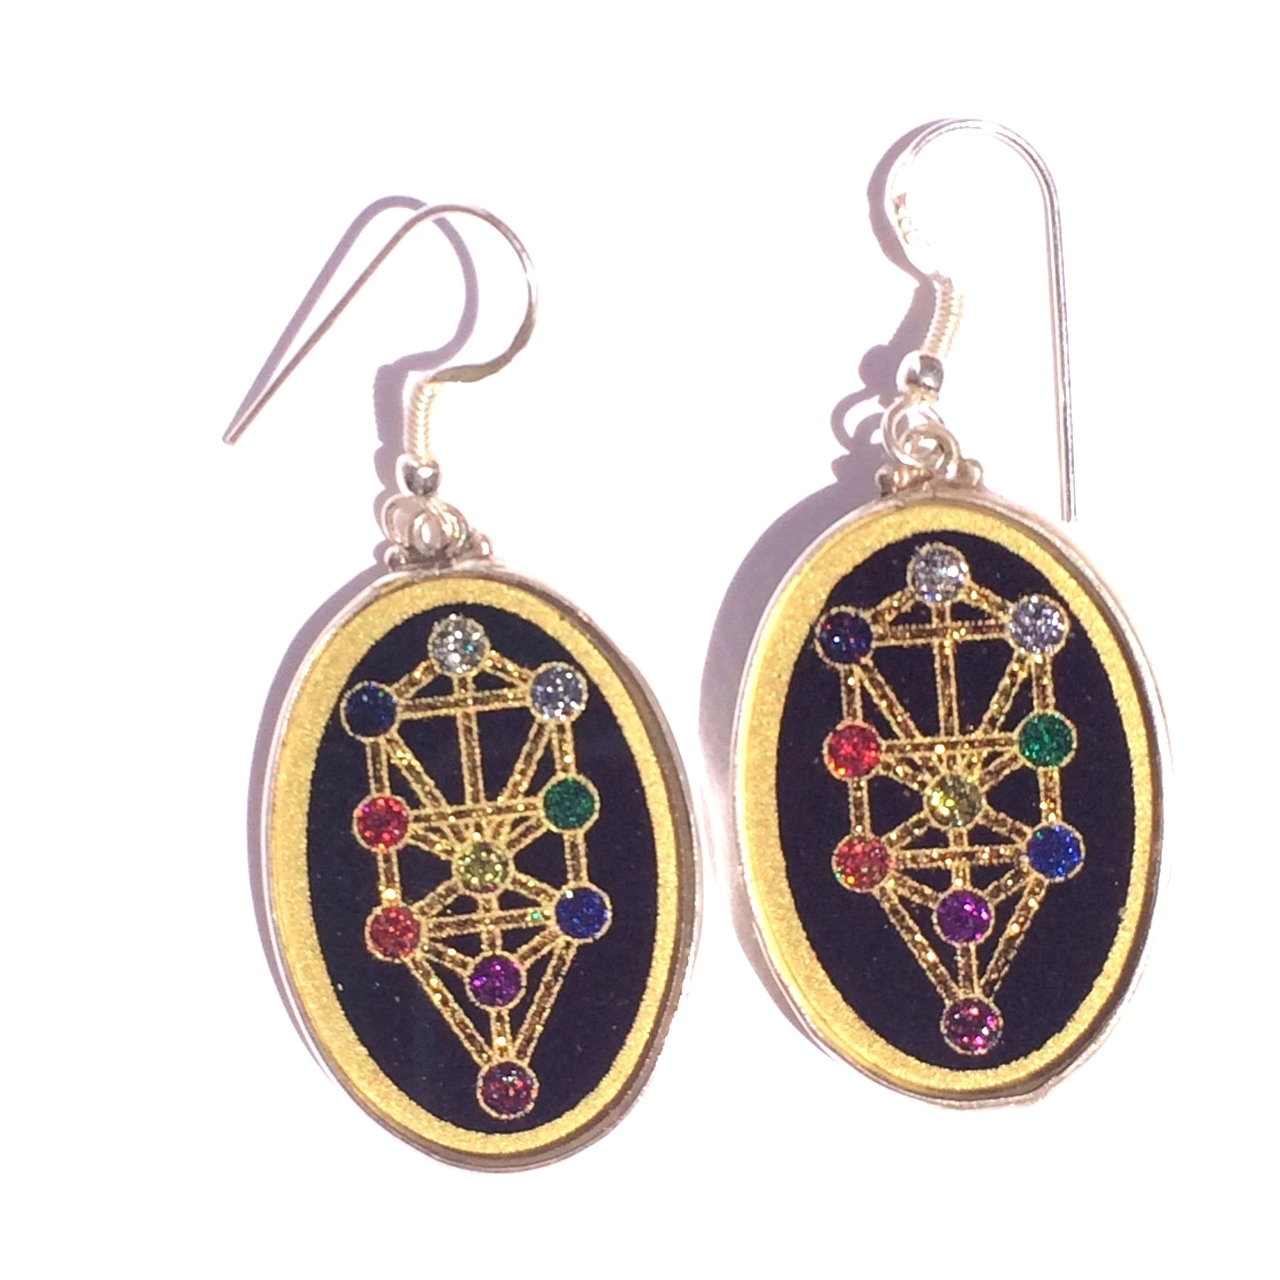 Tree of Life Sacred Geometry Earrings (black tourmaline) by Scalar Heart Collection 614961513600